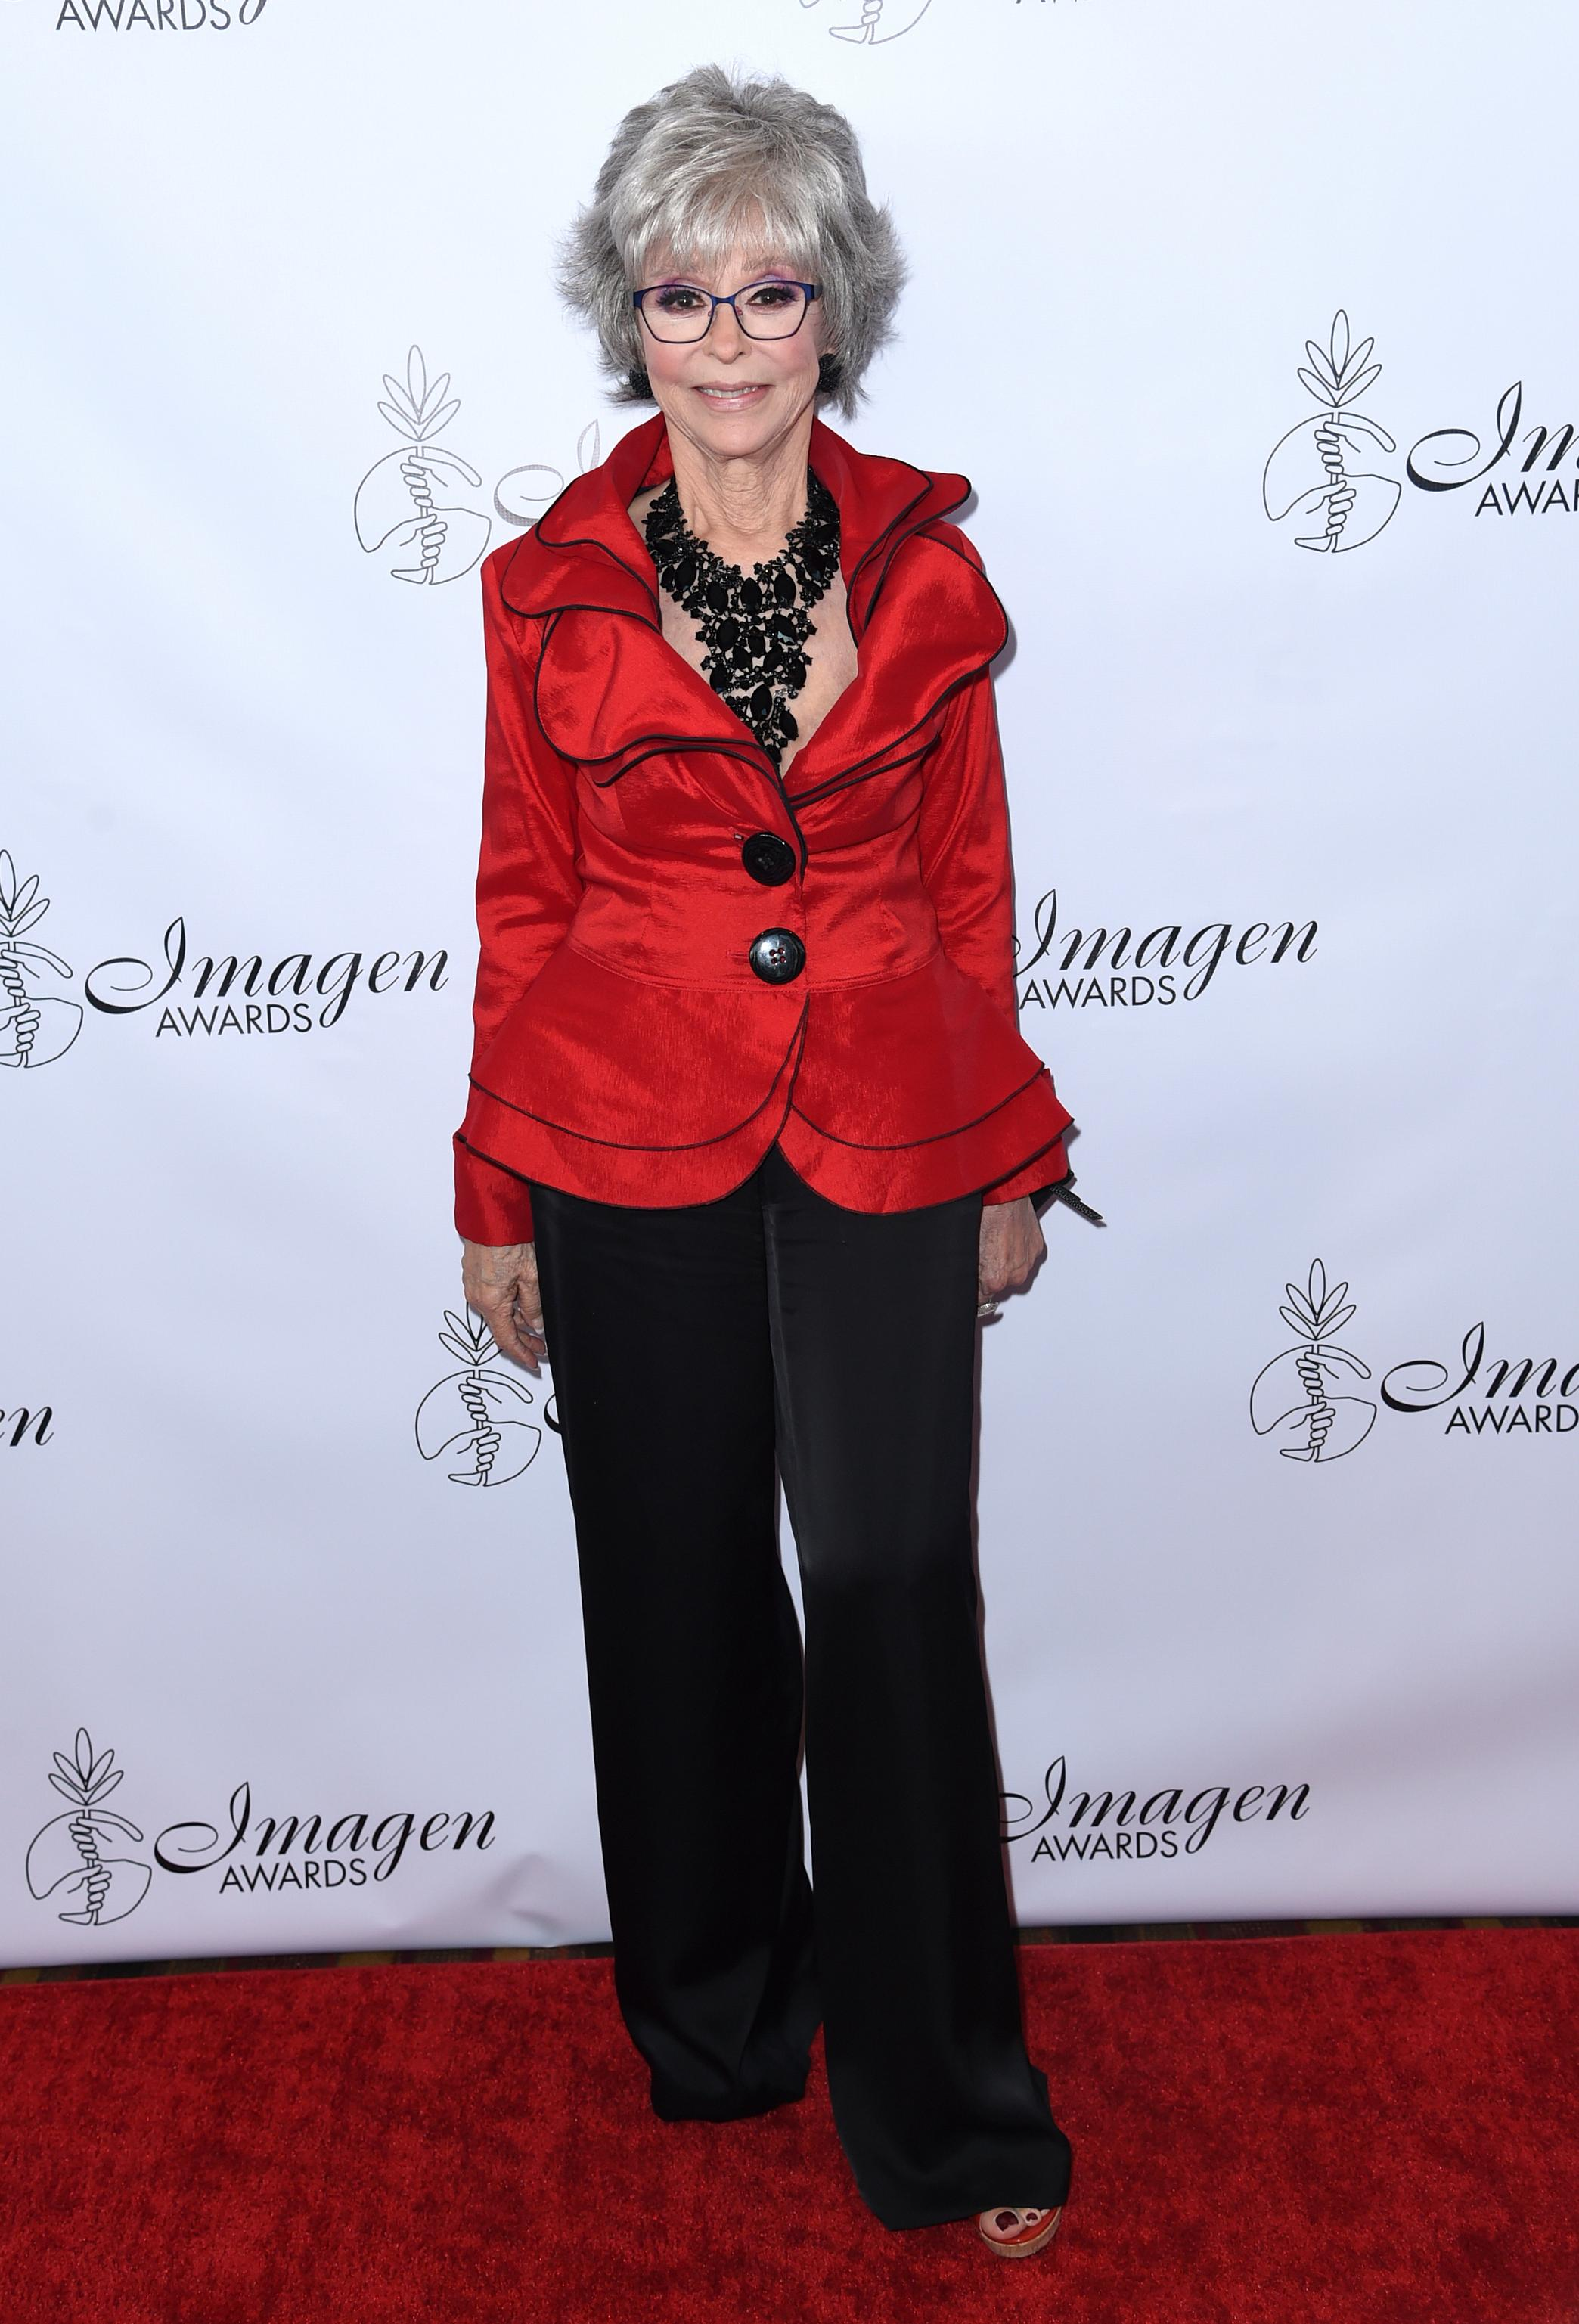 FILE - In this Aug. 25, 2018, file photo, Rita Moreno arrives at the 33rd annual Imagen Awards in Los Angeles. PBS announced Monday, July 29, 2019,.(Photo by Richard Shotwell/Invision/AP, File)